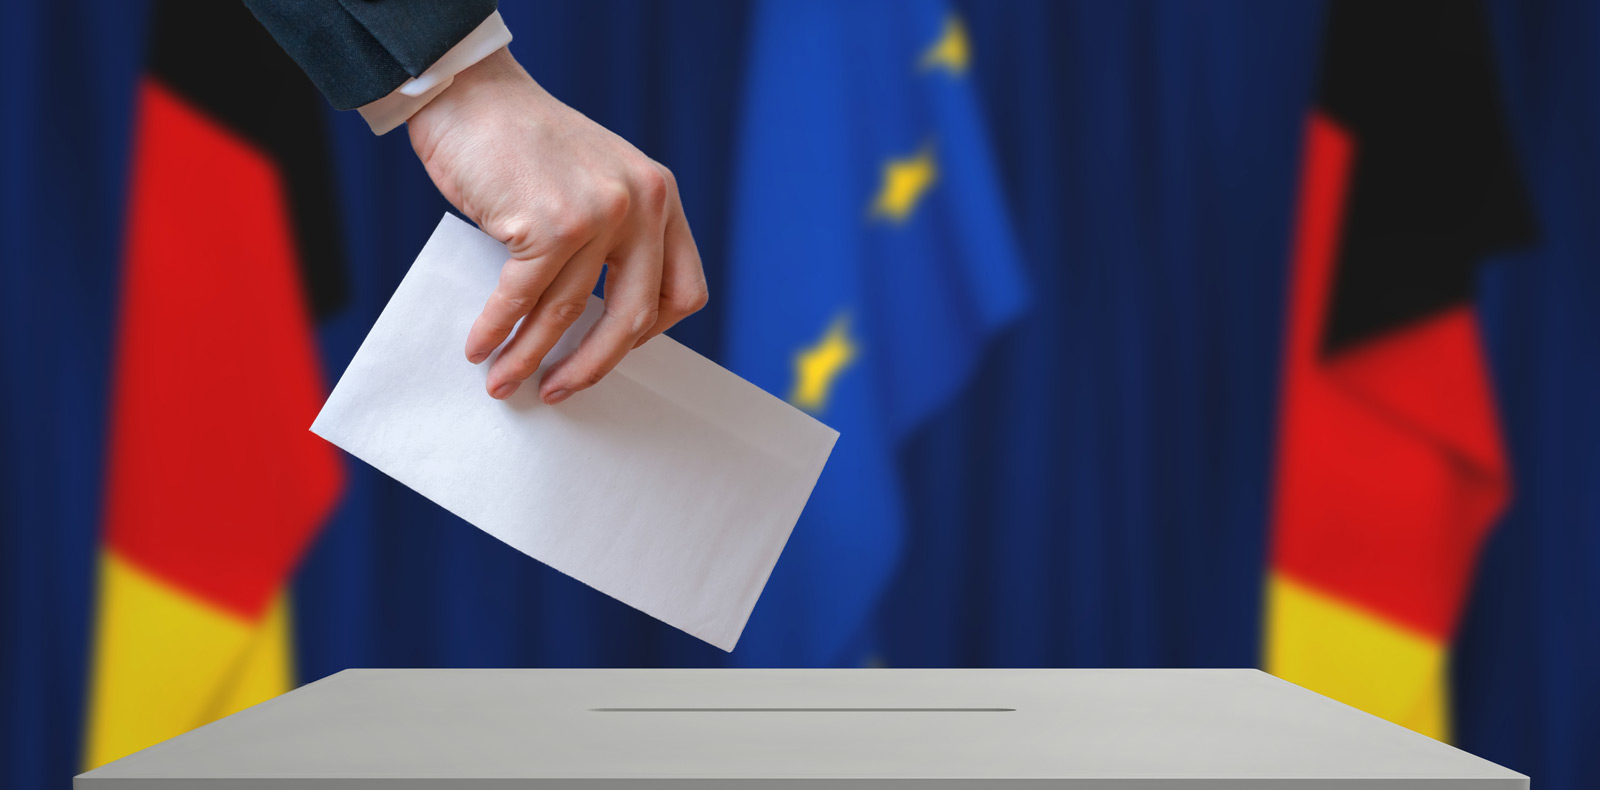 Italian elections and German unity key for investor confidence